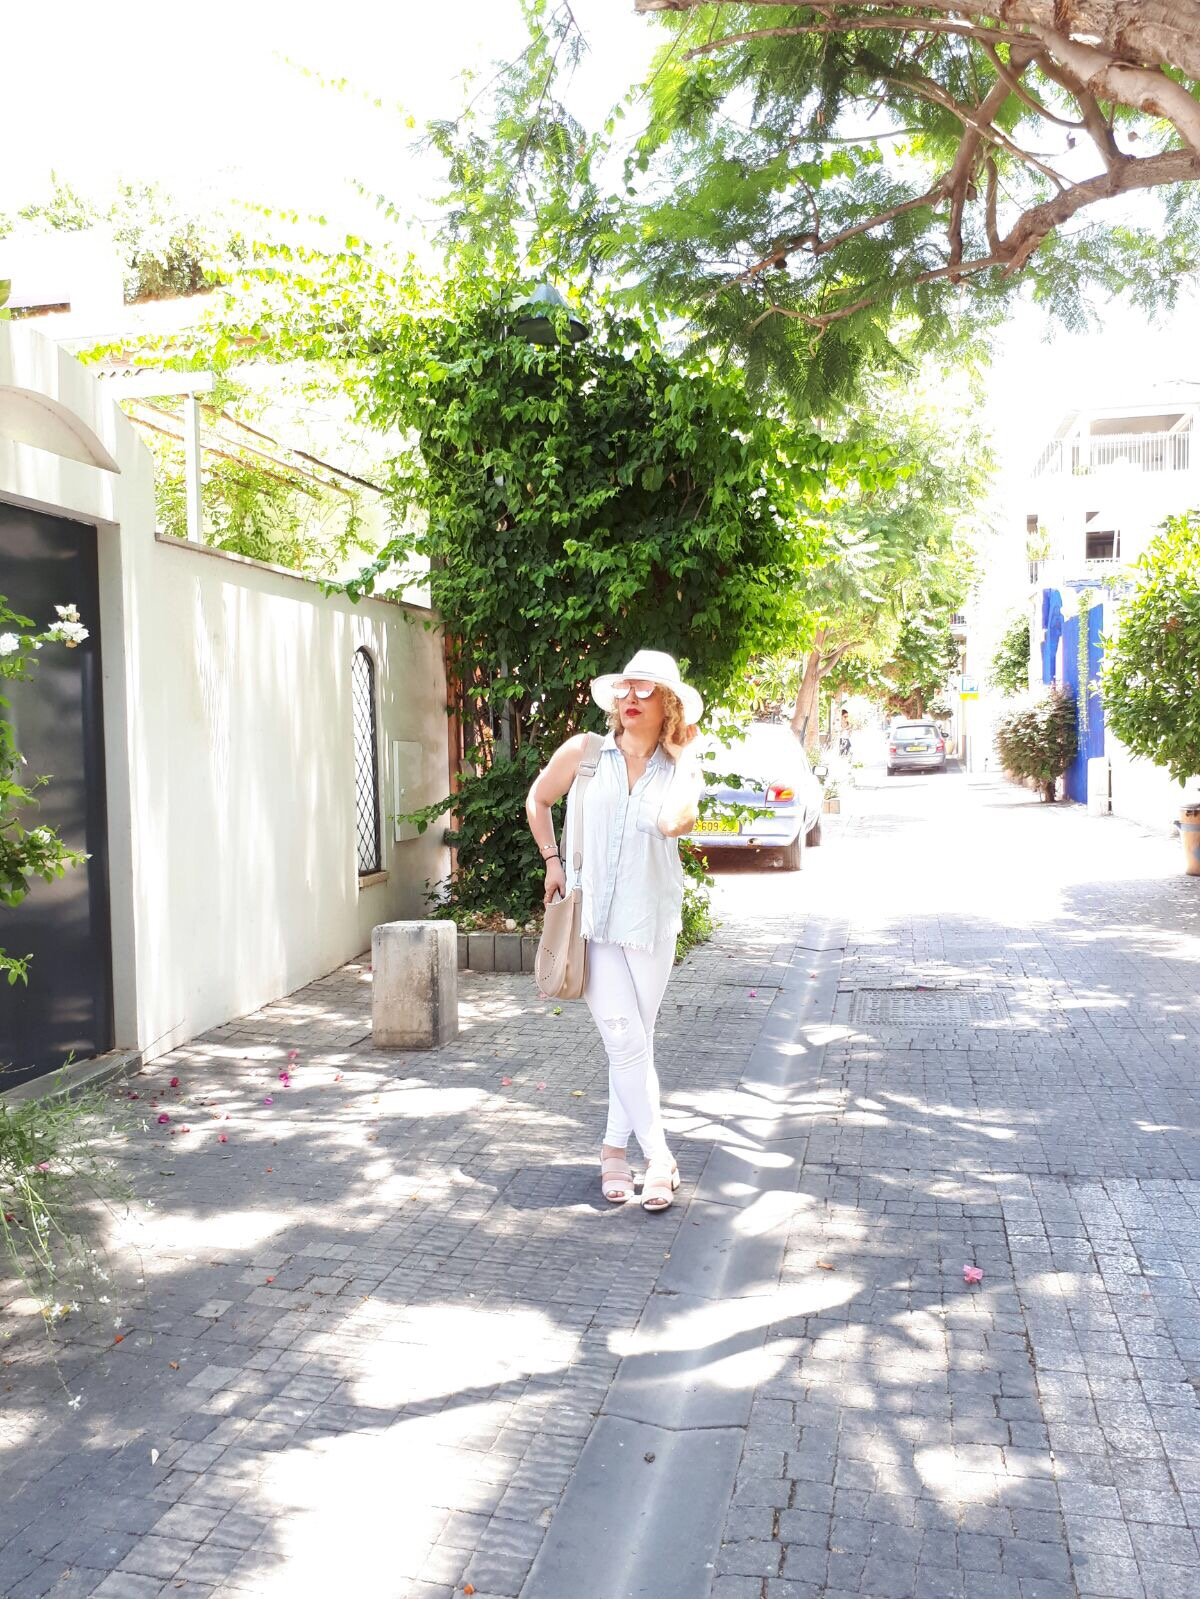 Travel Guide to Neve Tzedek, the most fashionable district in Israel